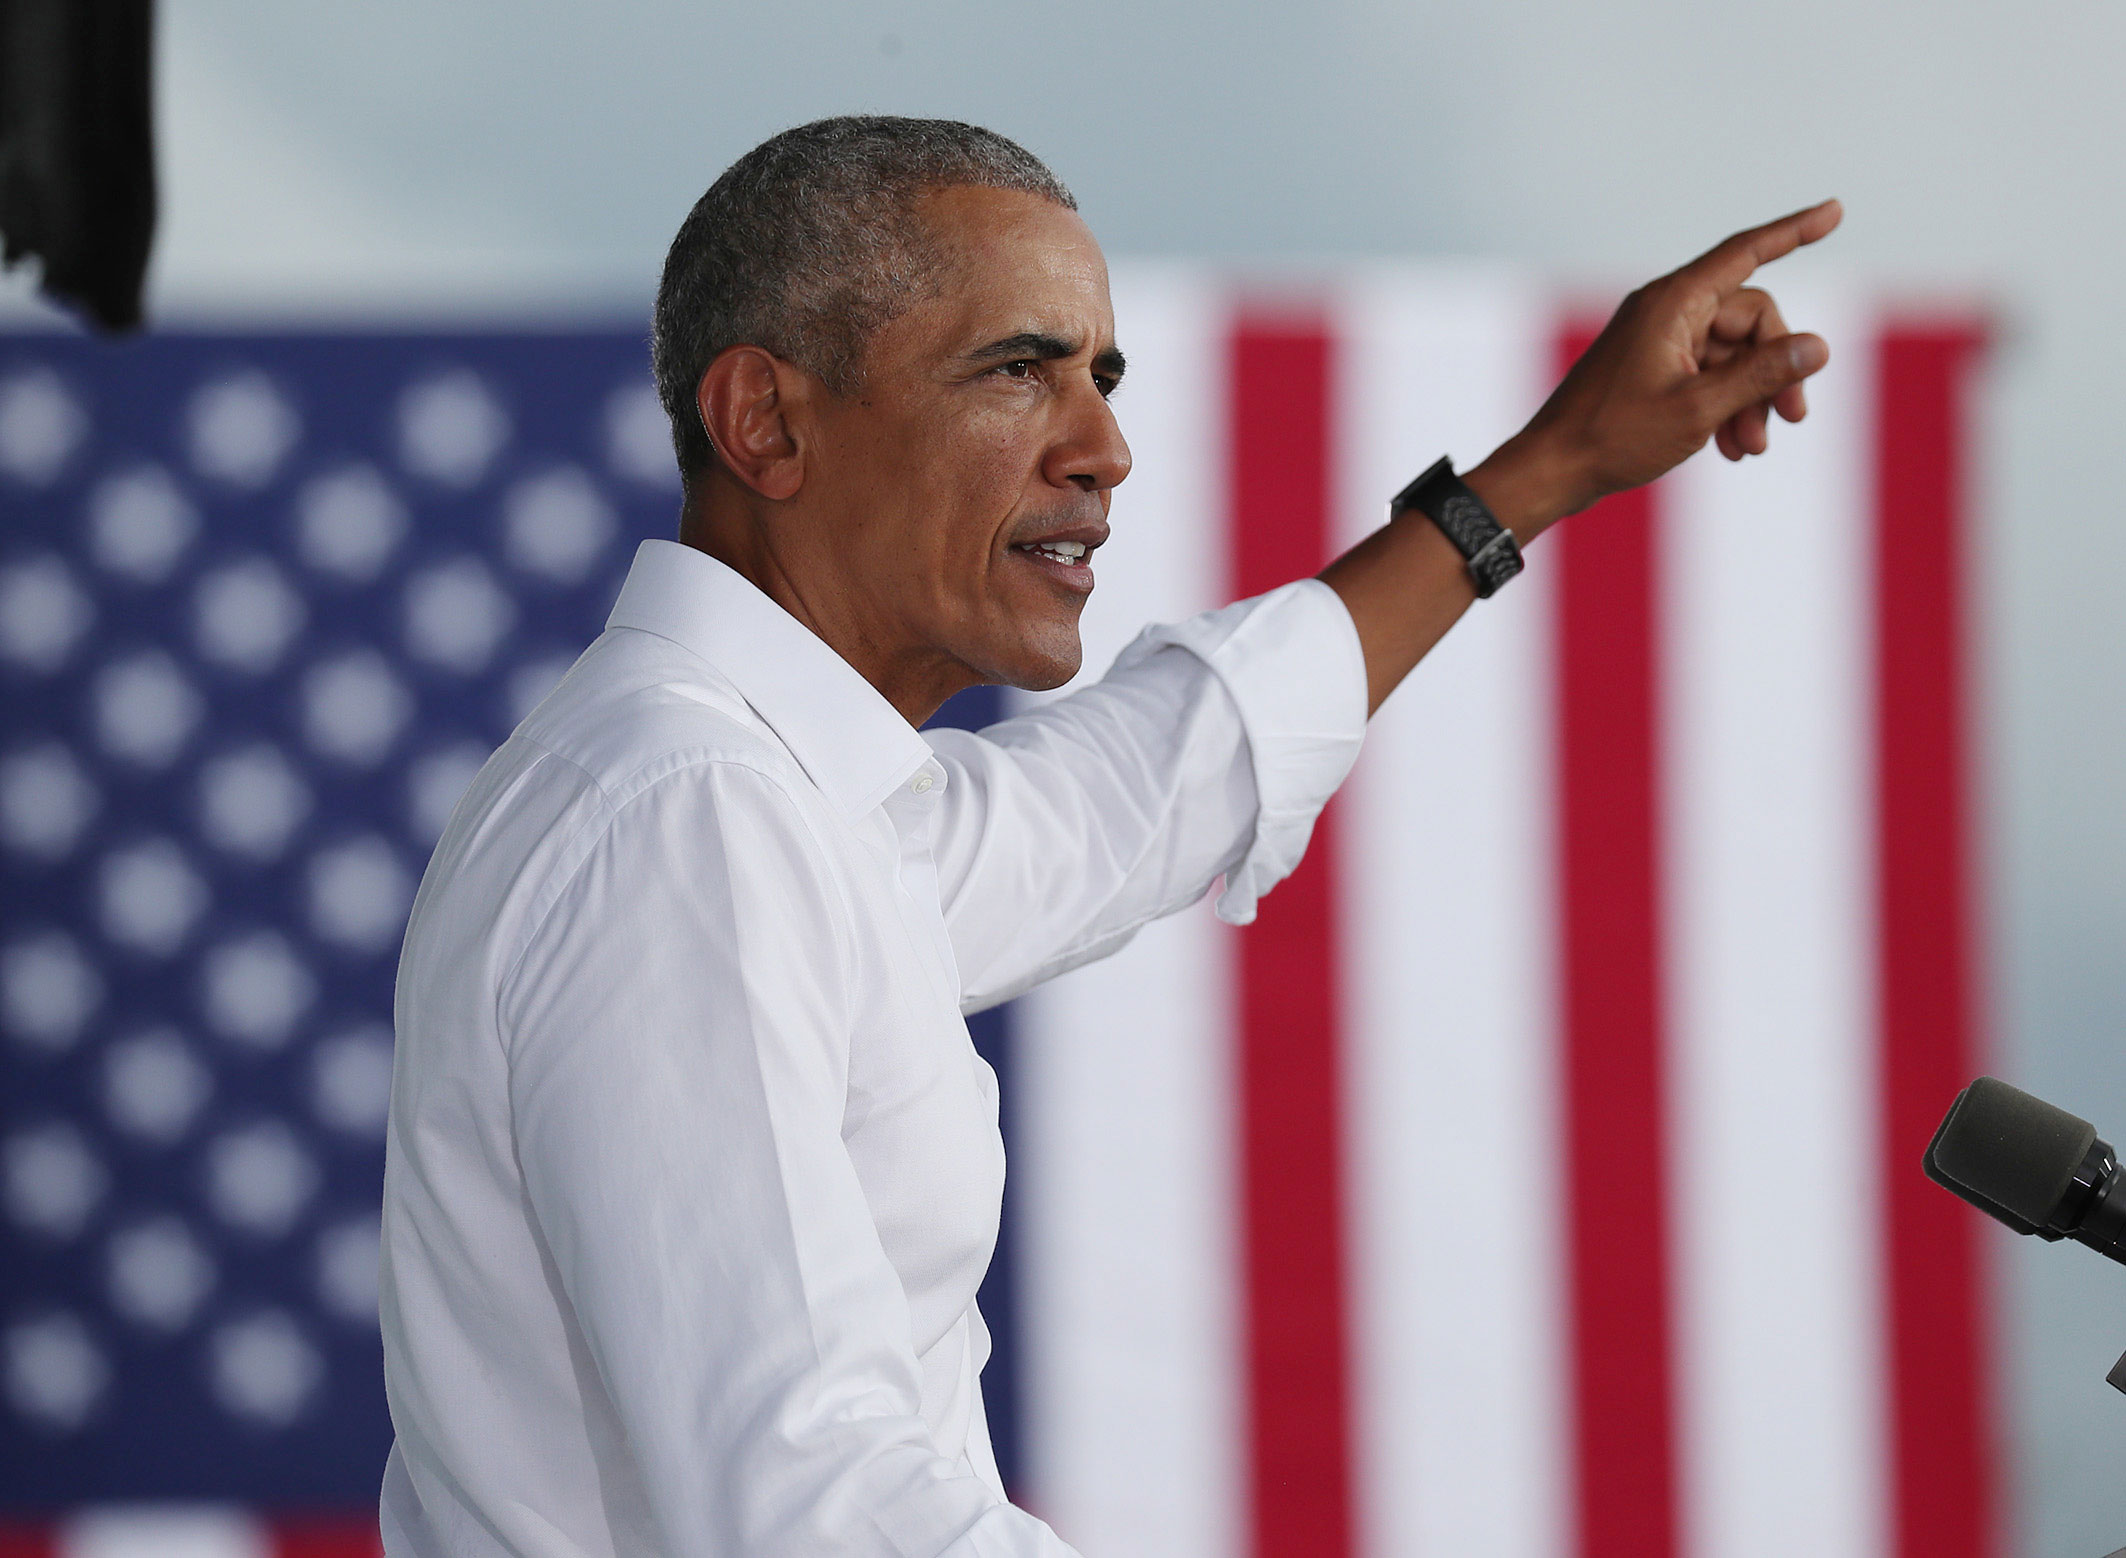 Obama to join Biden on campaign trail for final weekend push